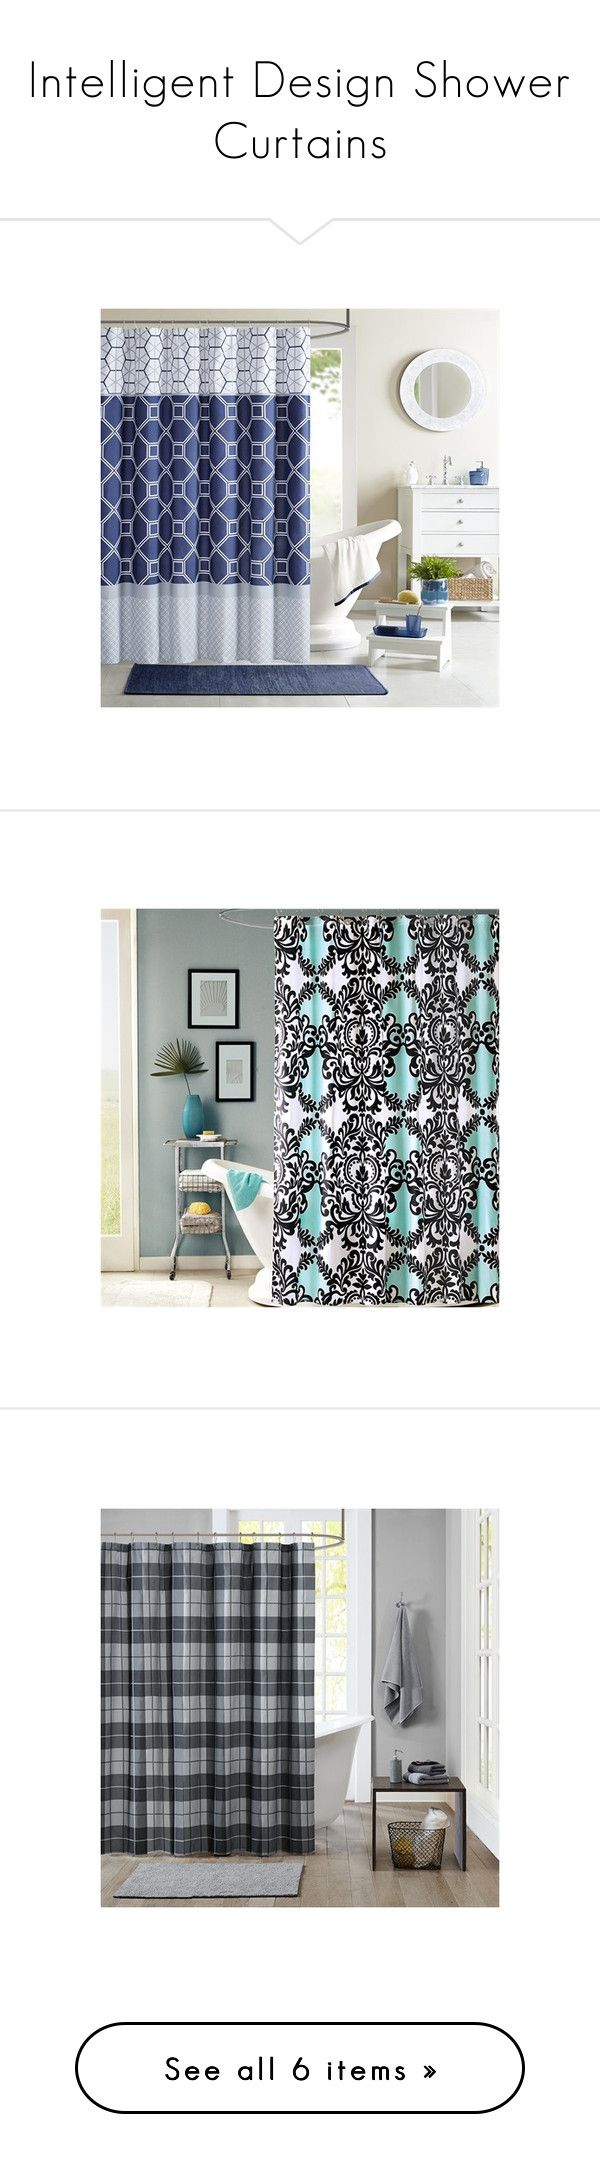 """""""Intelligent Design Shower Curtains"""" by designerliving ❤ liked on Polyvore featuring home, bed & bath, bath, shower curtains, navy, navy shower curtains, navy blue shower curtains, modern shower curtains, aqua and aqua shower curtains"""